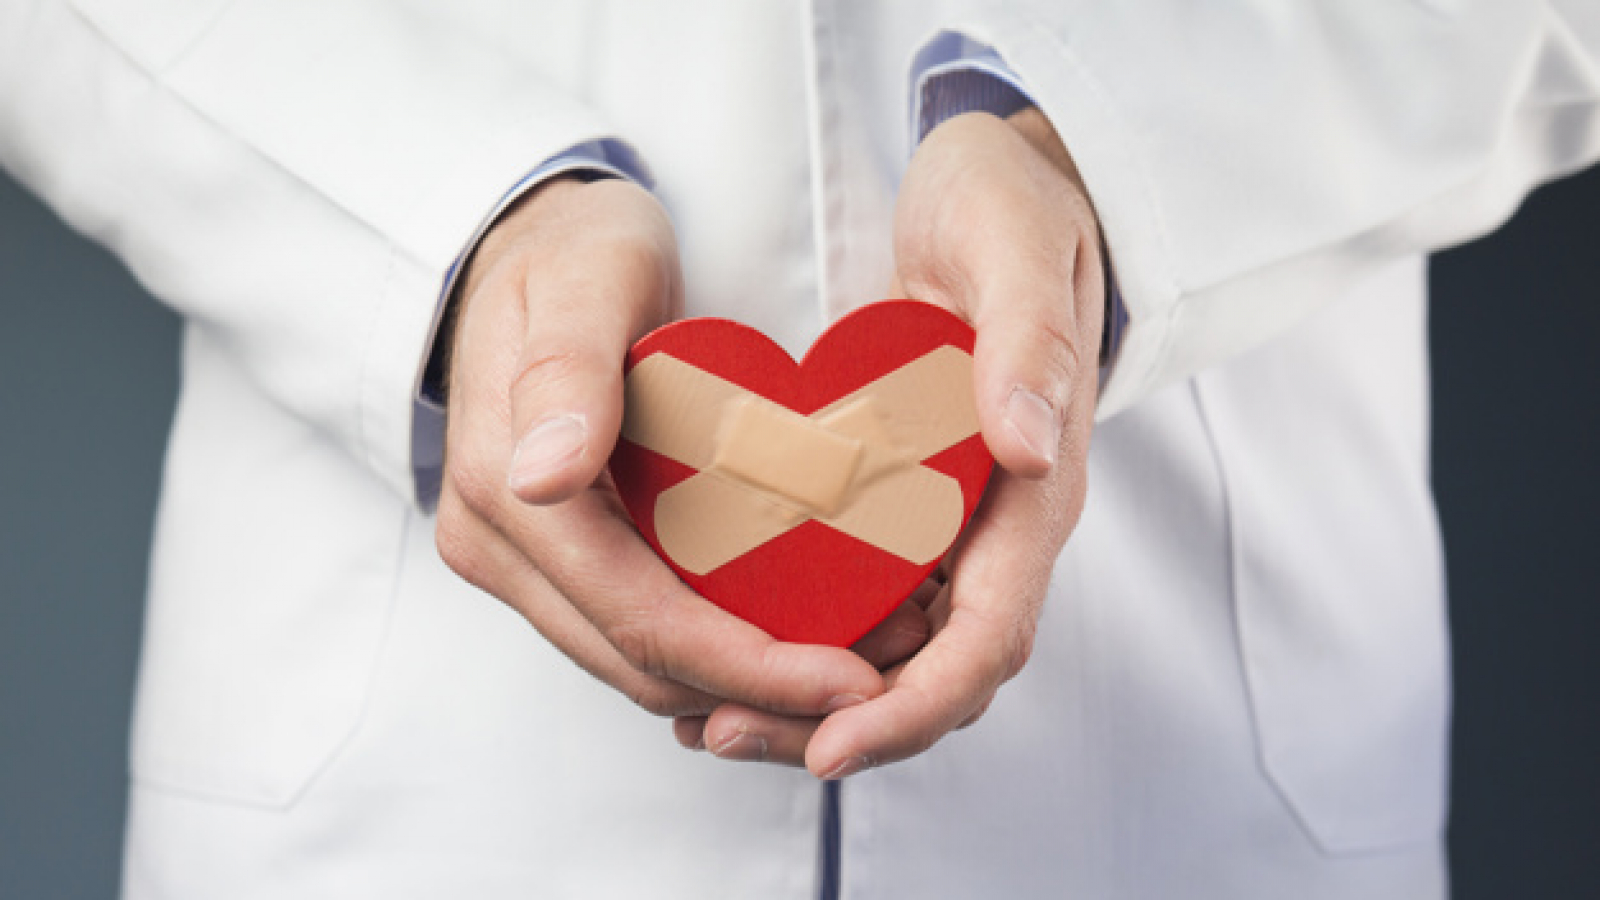 close-up-doctor-s-hand-holding-red-heart-with-crossed-bandages_23-2148050573